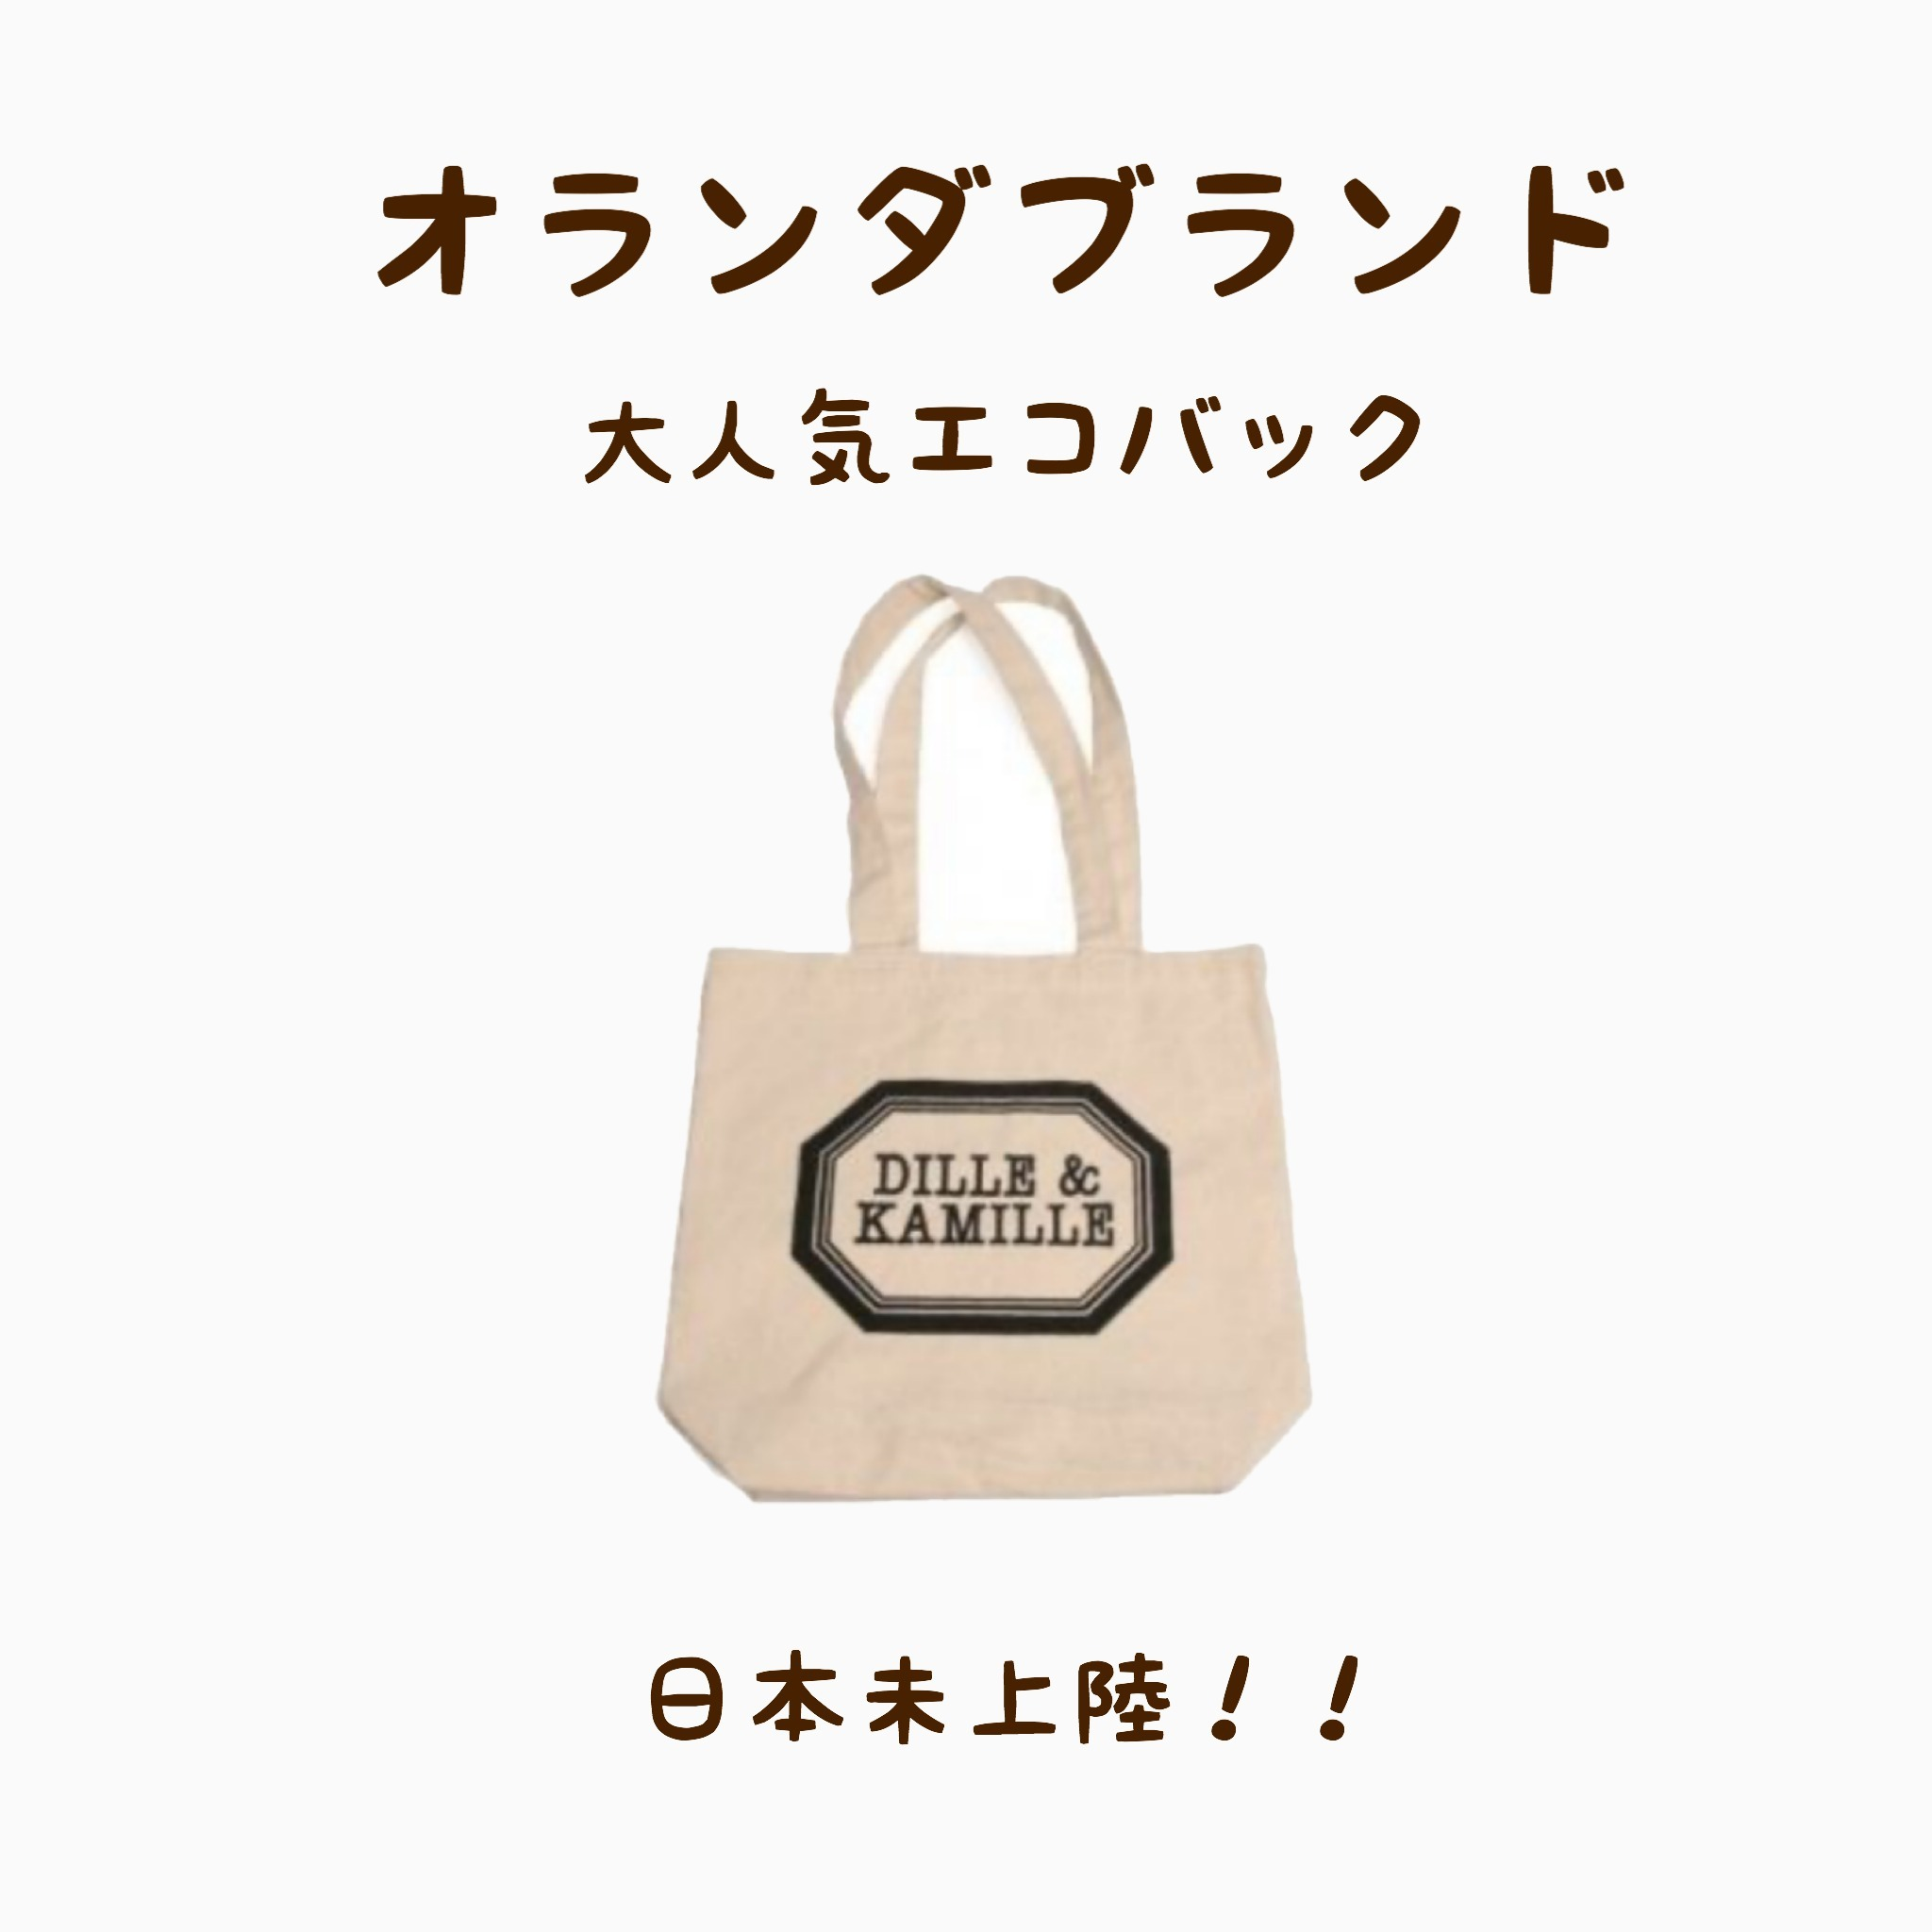 shop dille & kamille bags